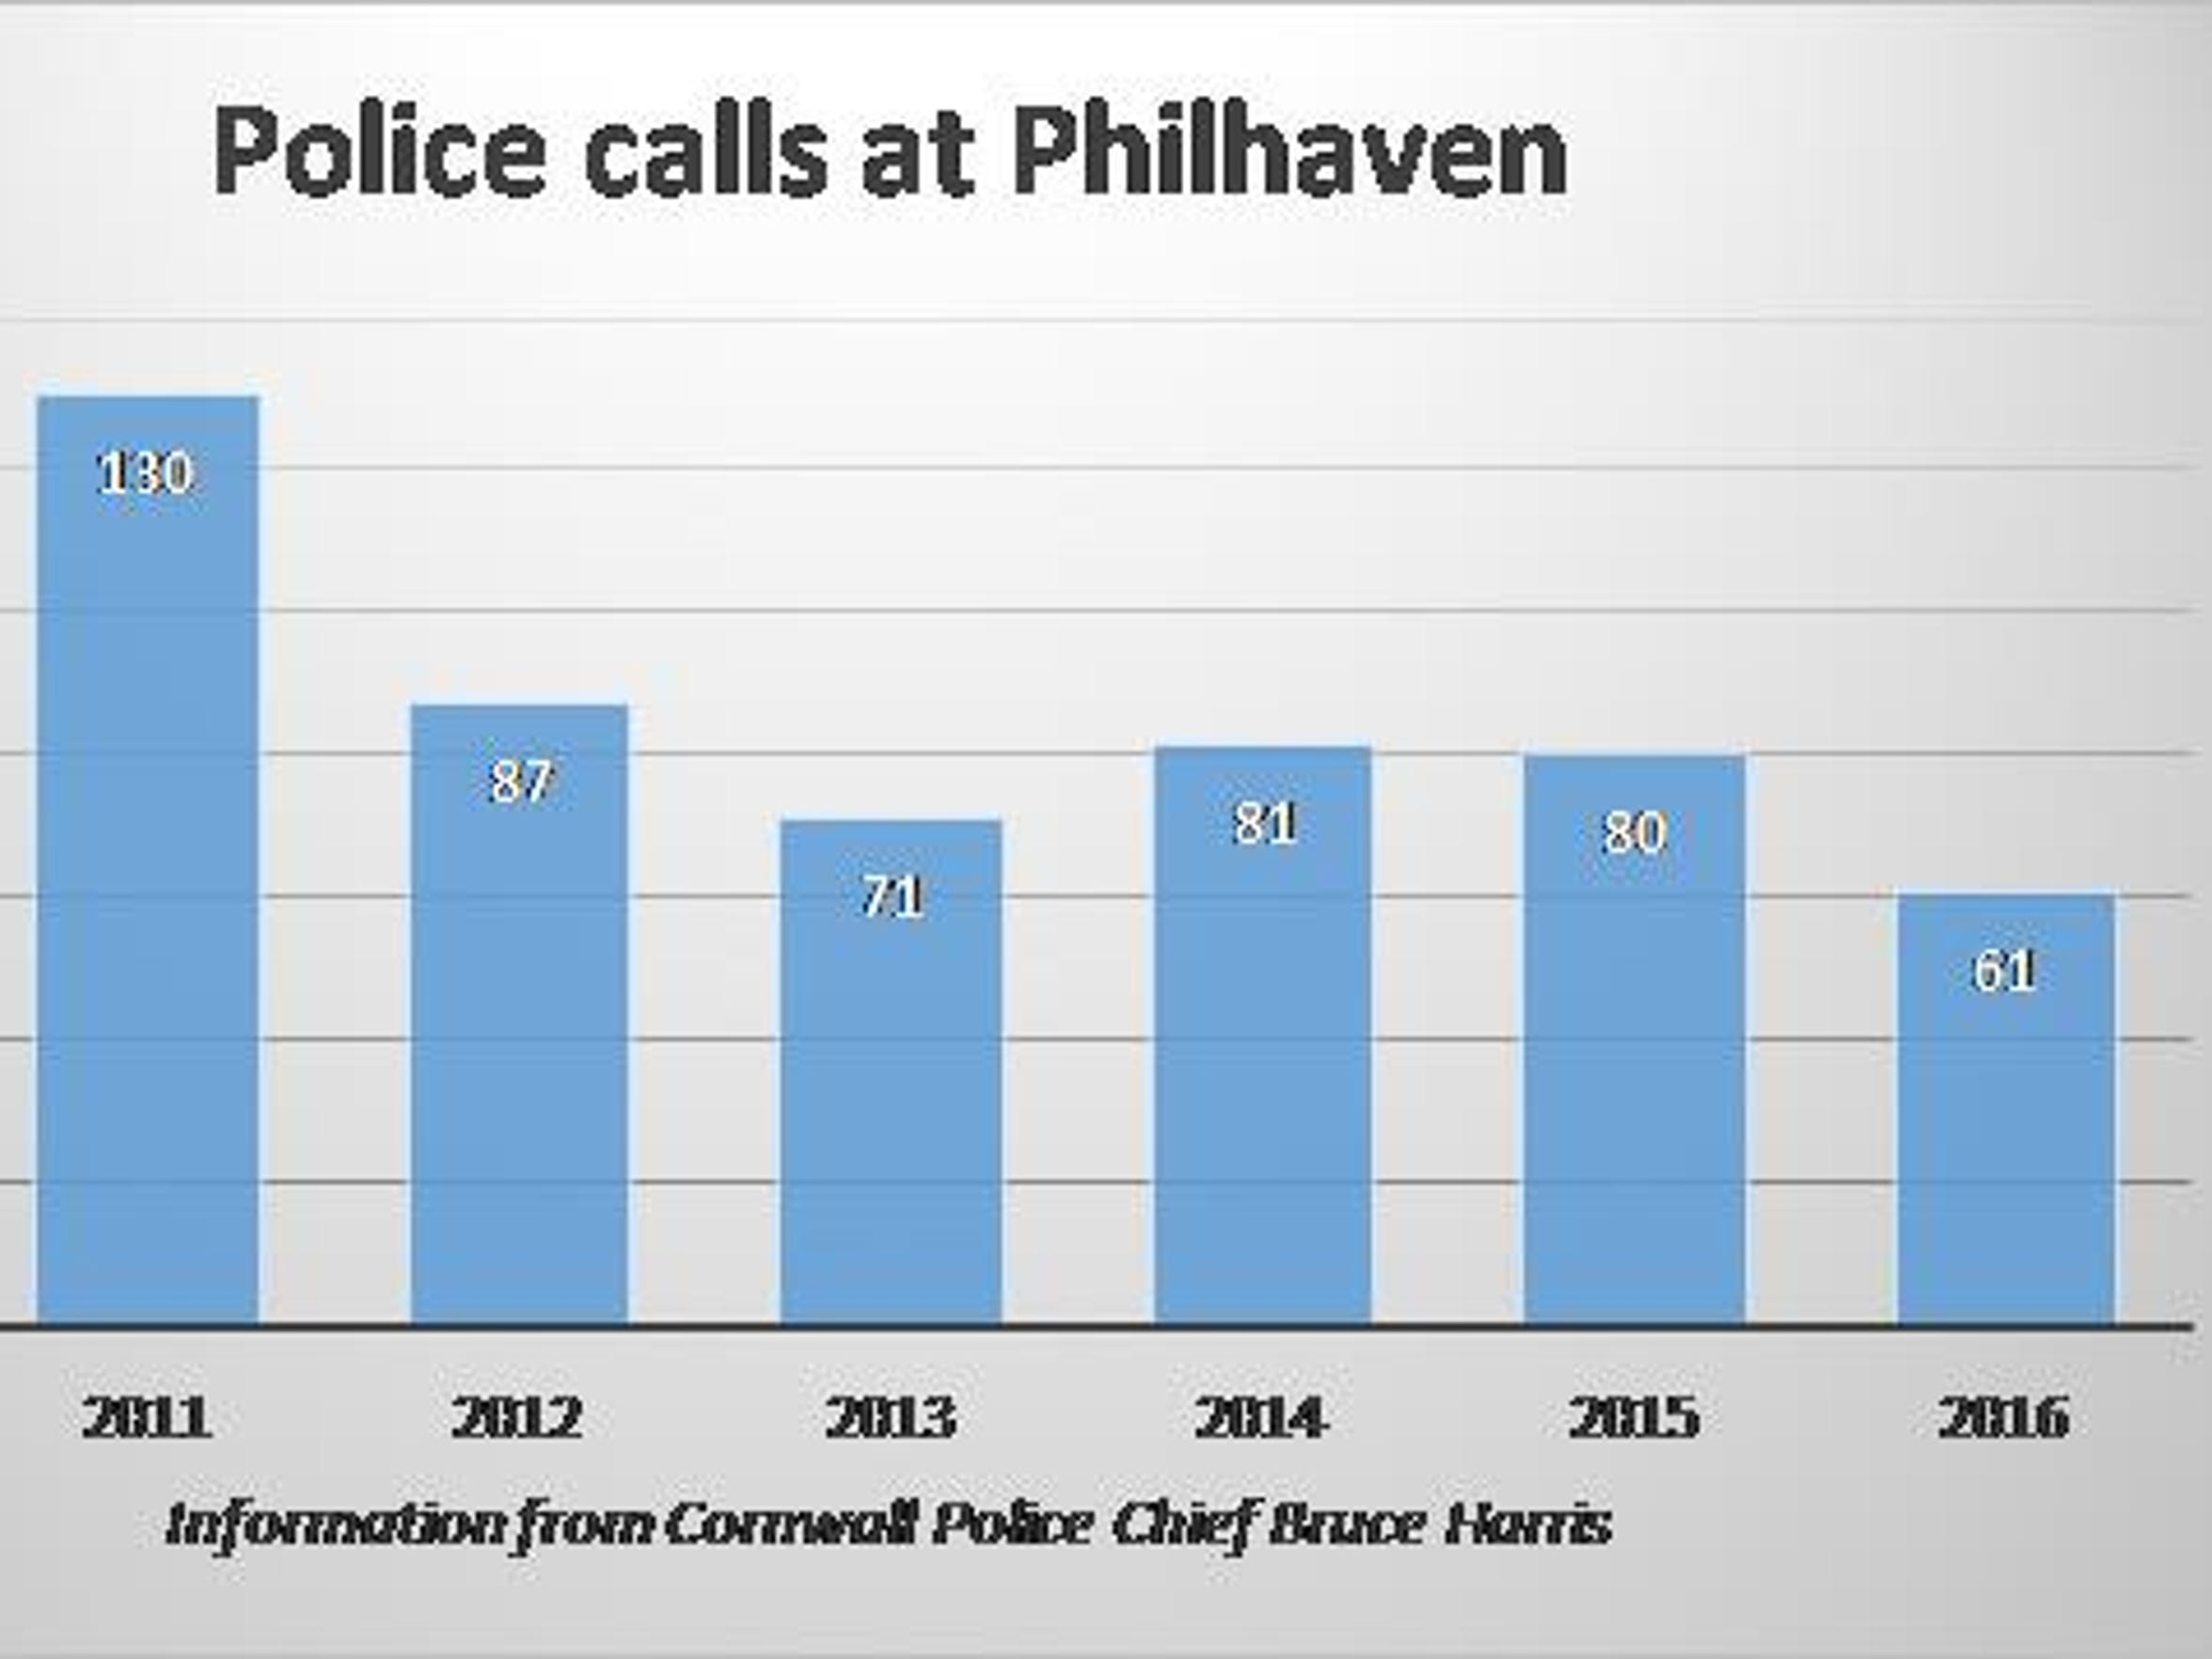 Calls for police services at Philhaven have remained steady over the past few years, after recovering from a spike in 2011.